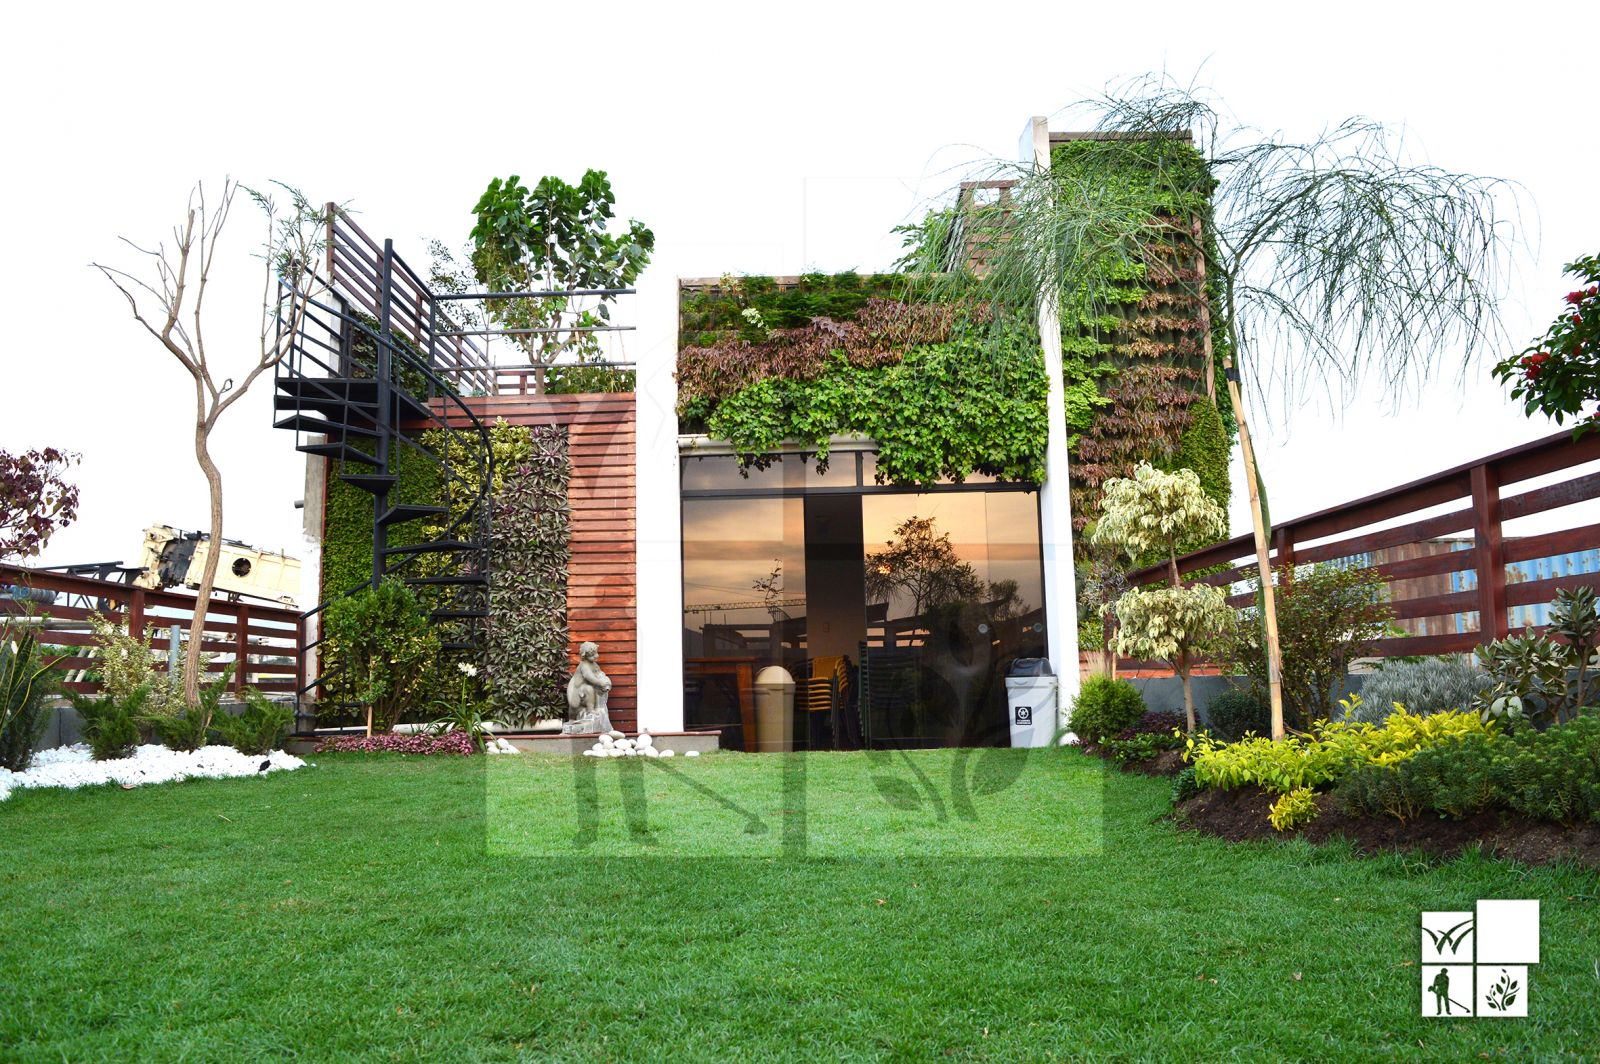 Greenwall paredes vegetales vivero chaclacayo for Paredes vegetales verticales